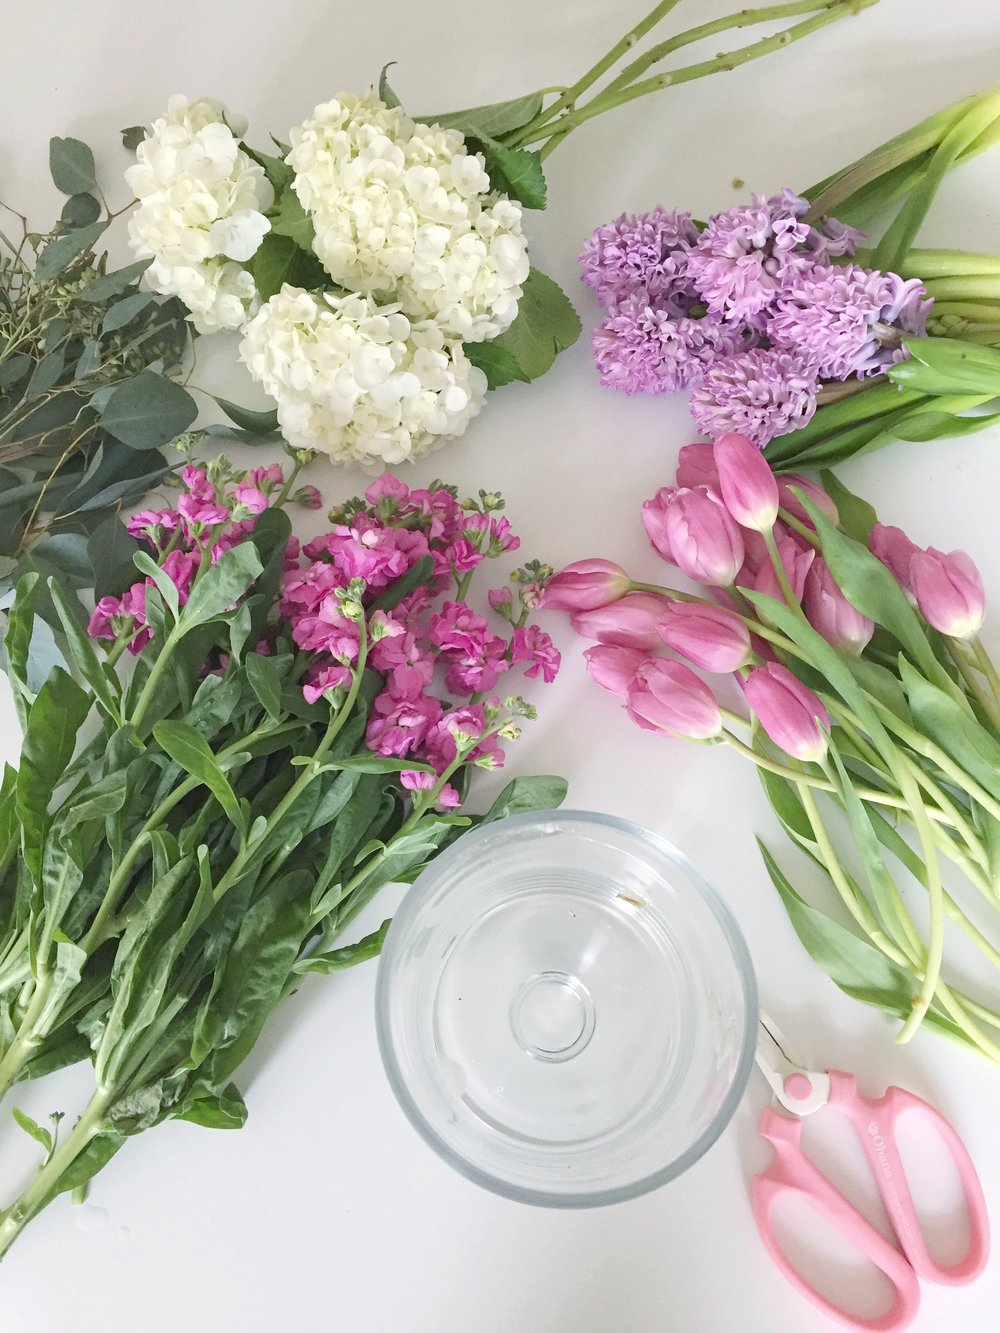 creating flower arrangements using grocery store flowers from Trader Joe's